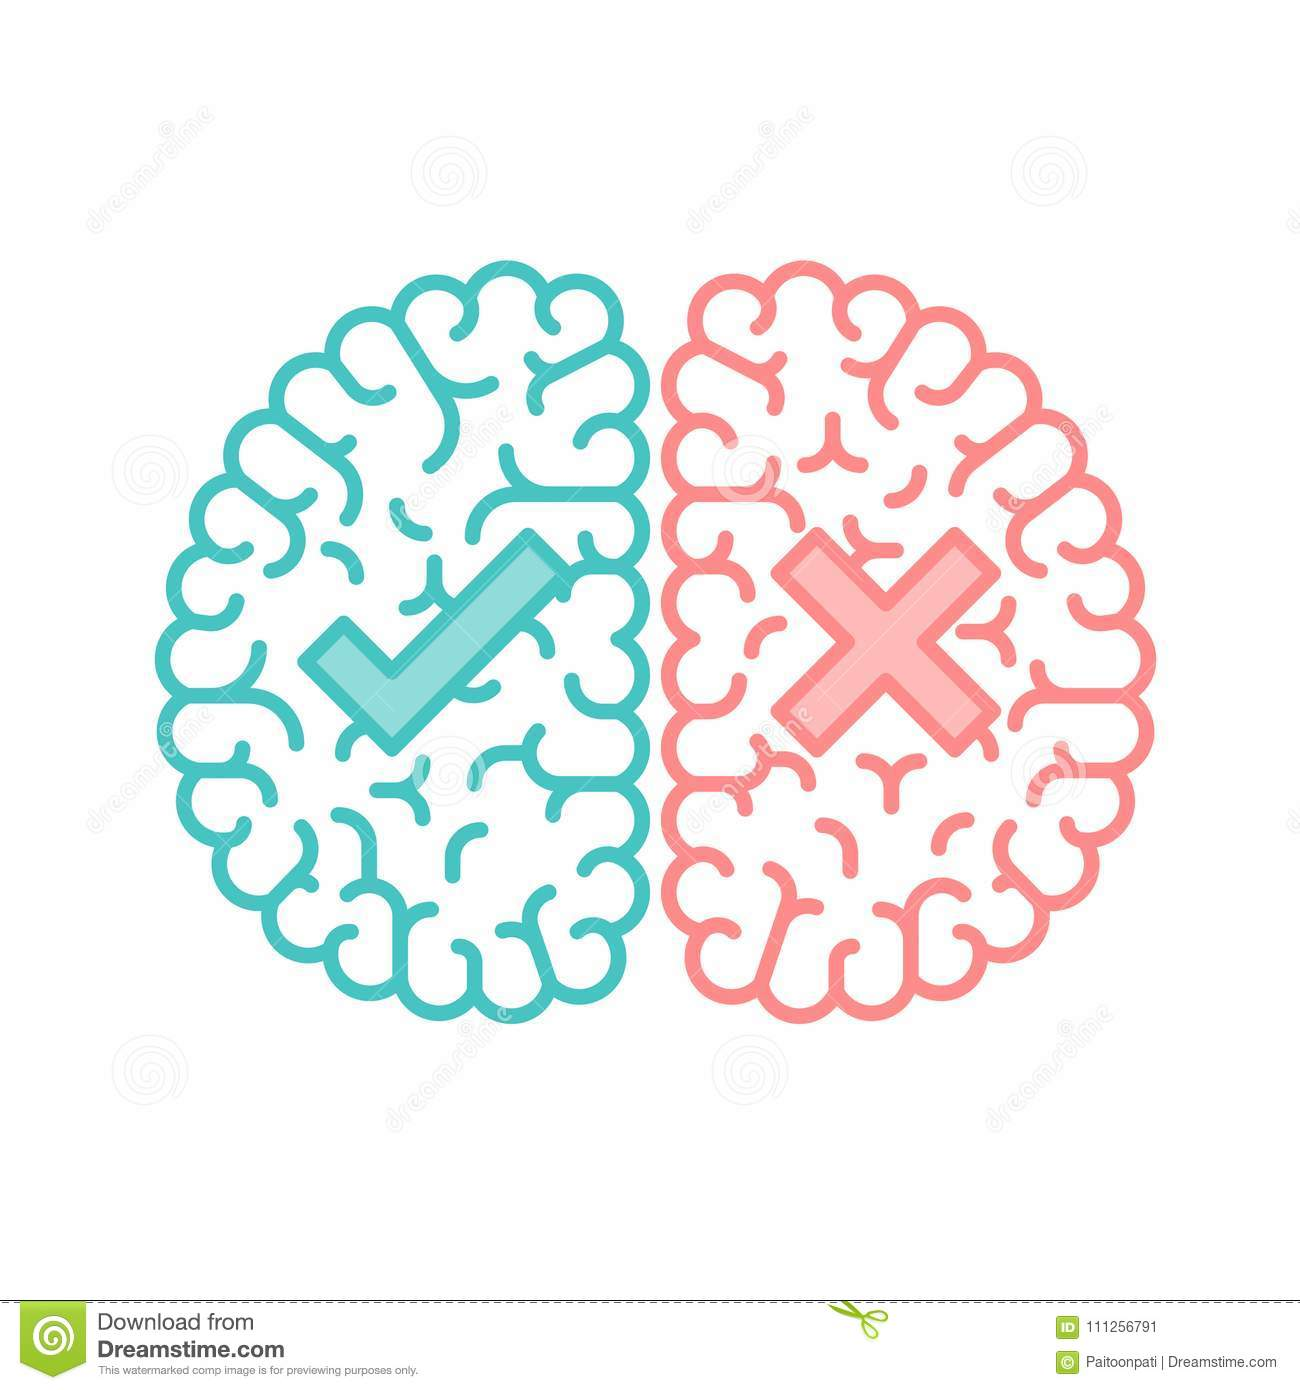 Left And Right Brain Correct And Wrong Concept Outline Stroke Flat